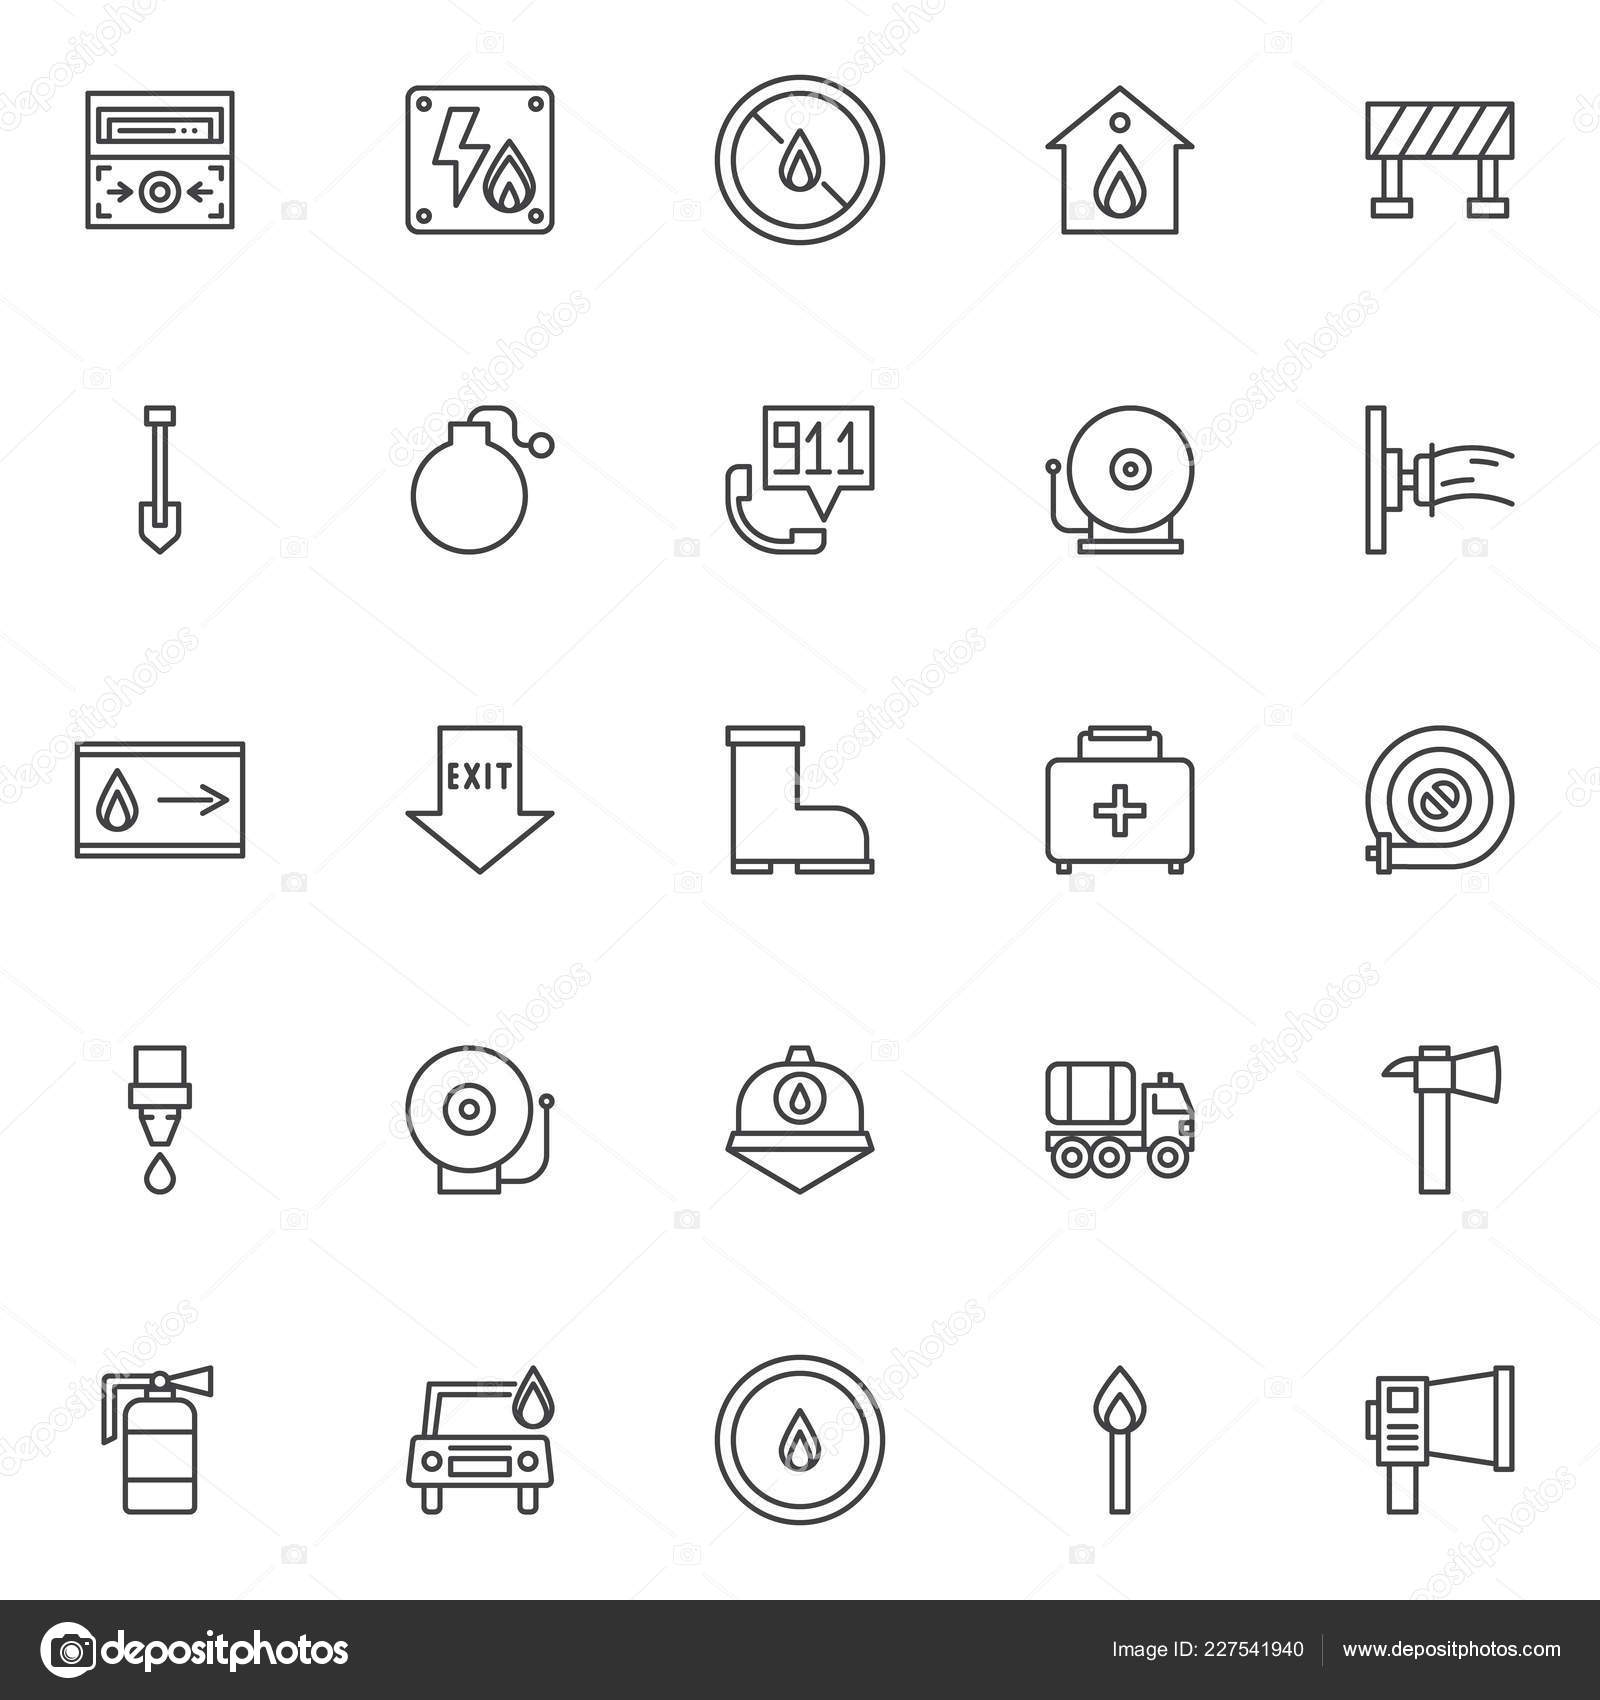 Fire Department Outline Icons Set Linear Style Symbols